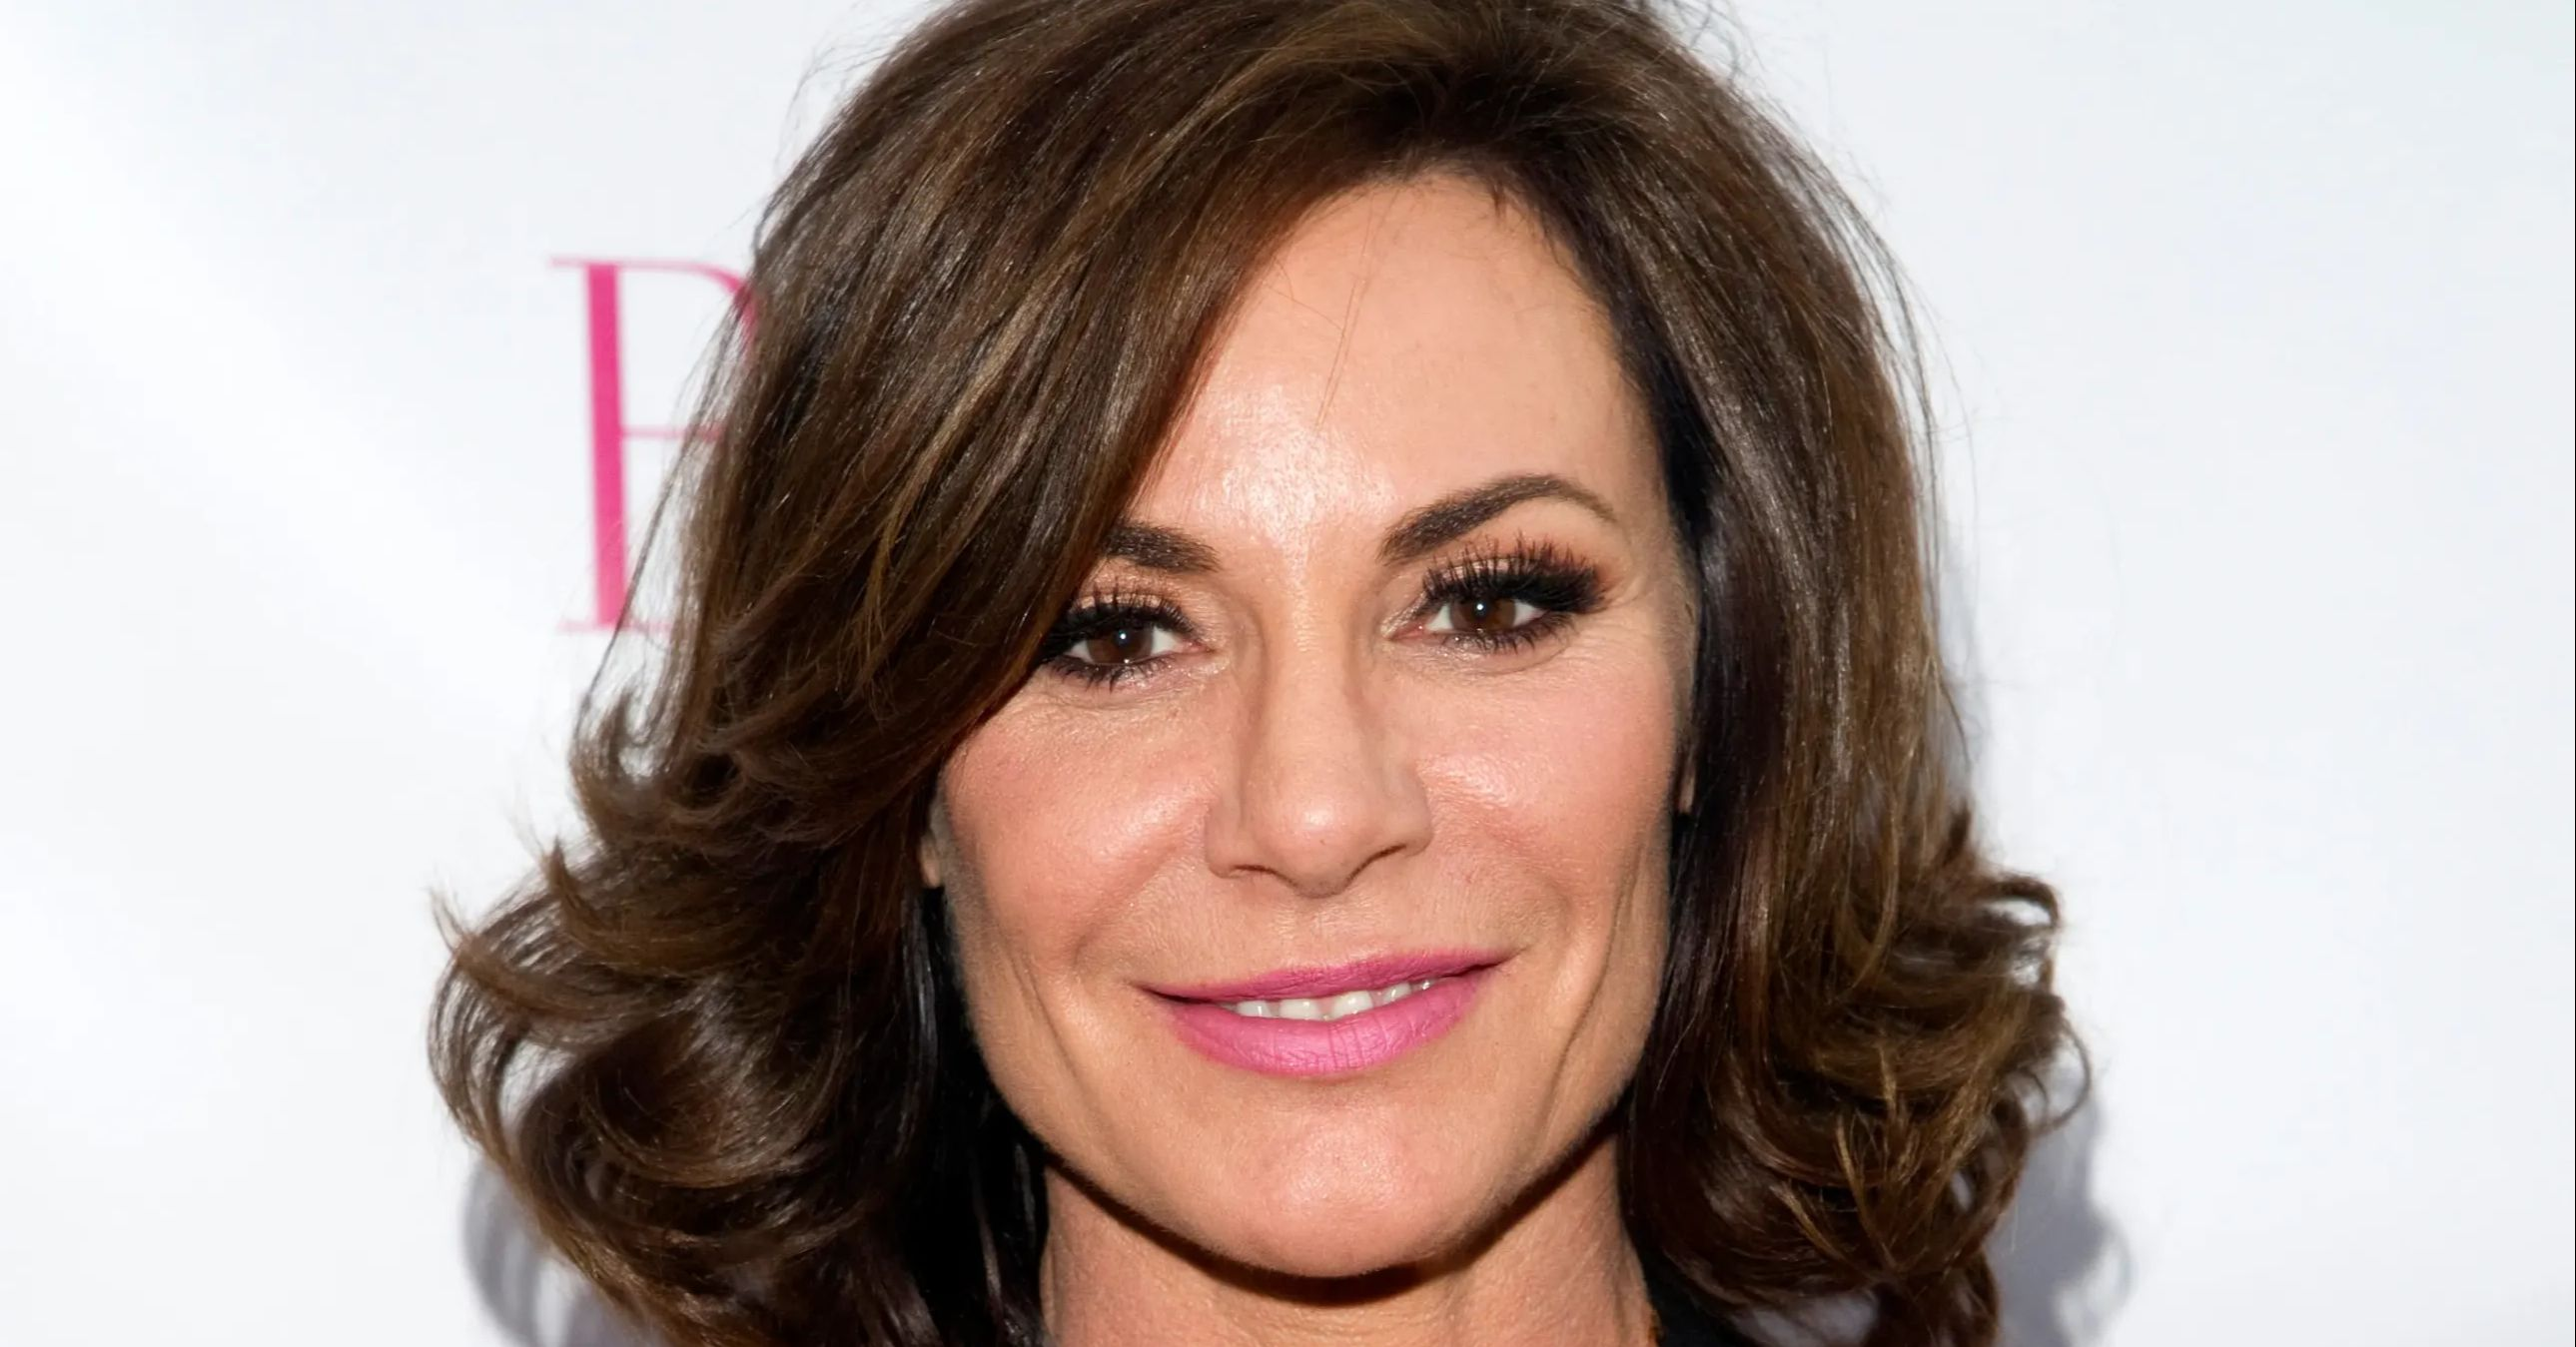 QU9yQVZ3bXc3MmdYbWNBVjhiT3EuanBn 8216 RHONY 8217 Star Luann de Lesseps Fixes Wedgie While On Mexican Bikini Vacation 8211 The Blast